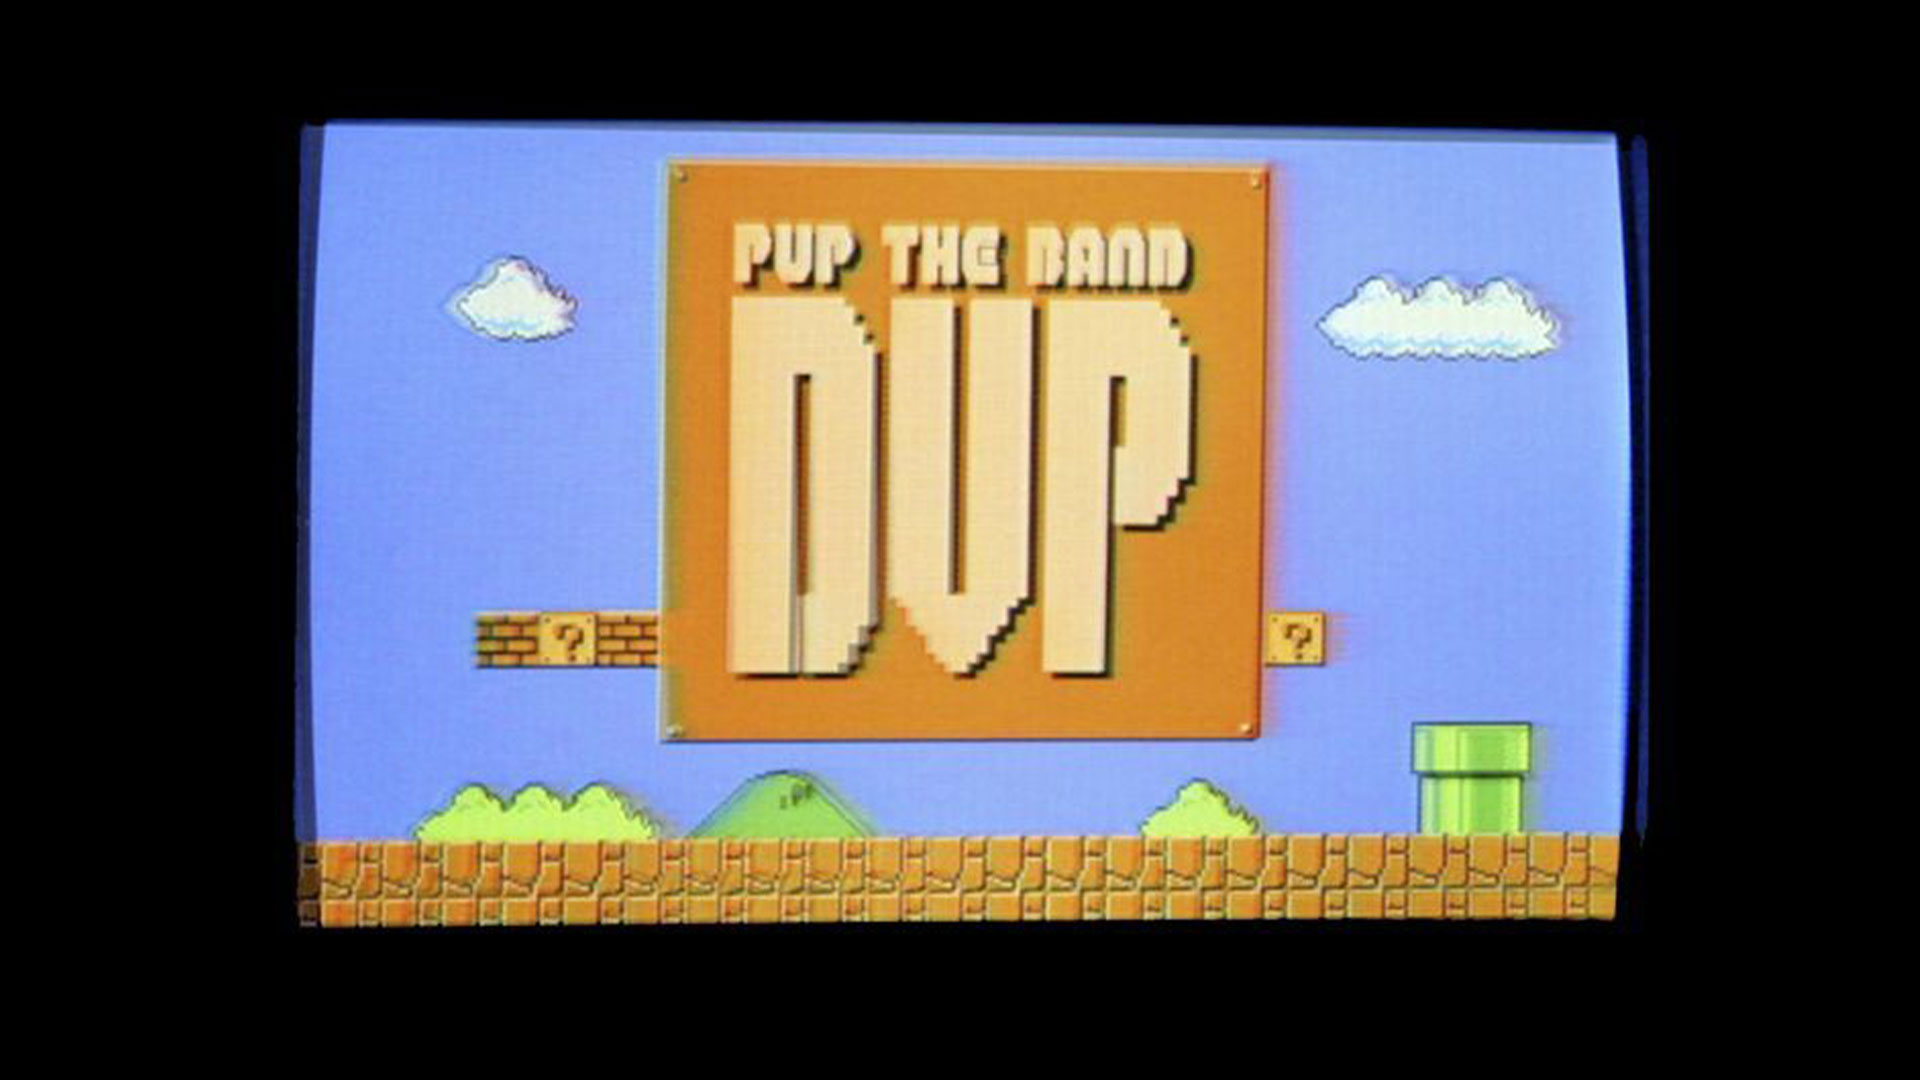 DVP video game-style title.